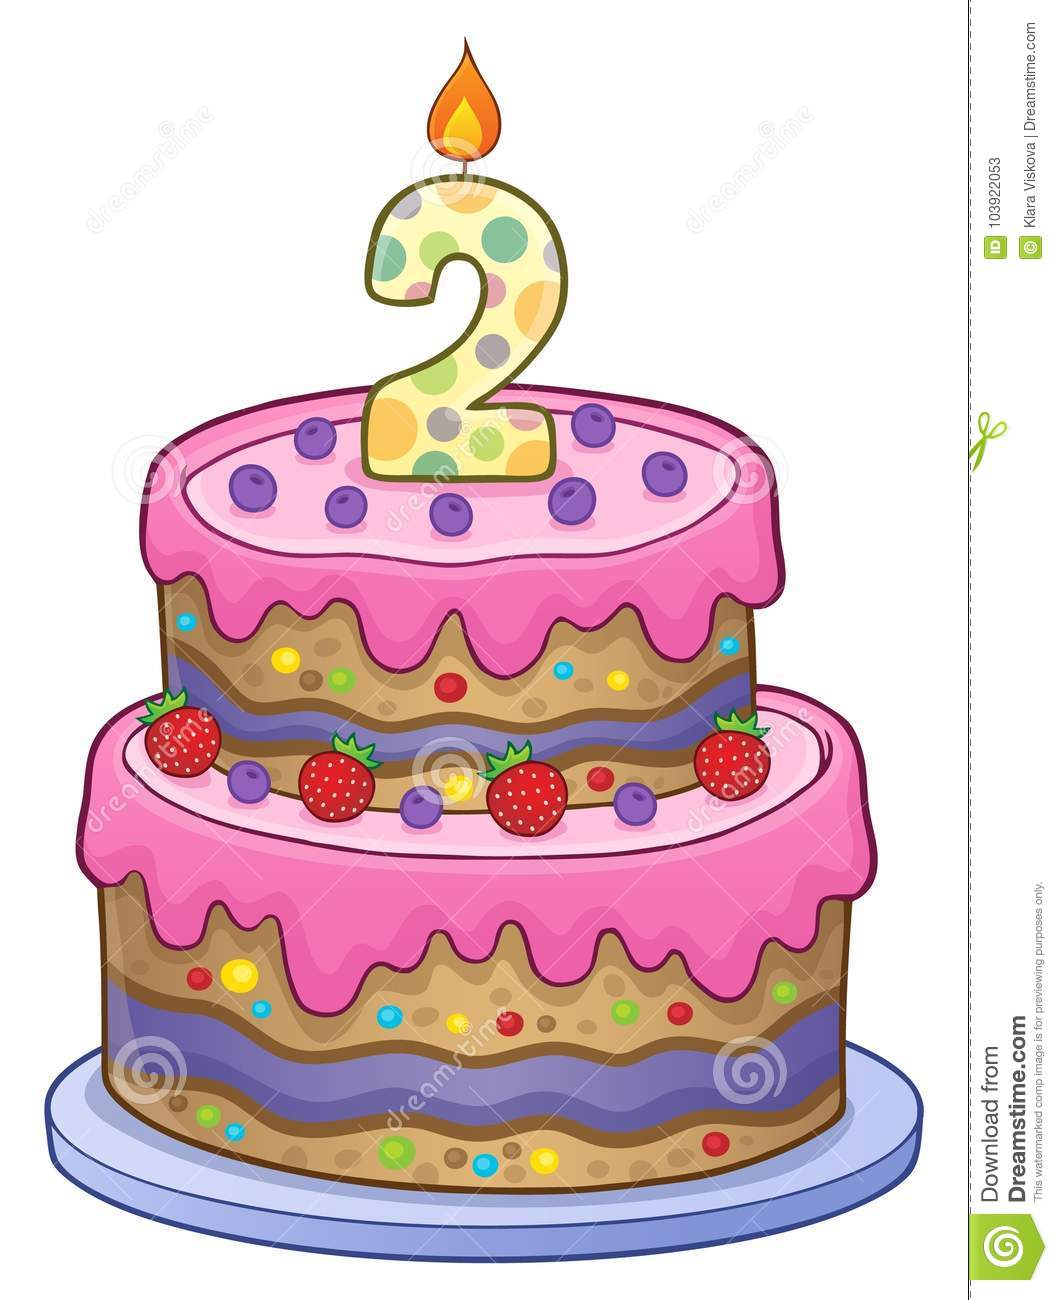 Birthday Cake Image For 2 Years Old Stock Vector